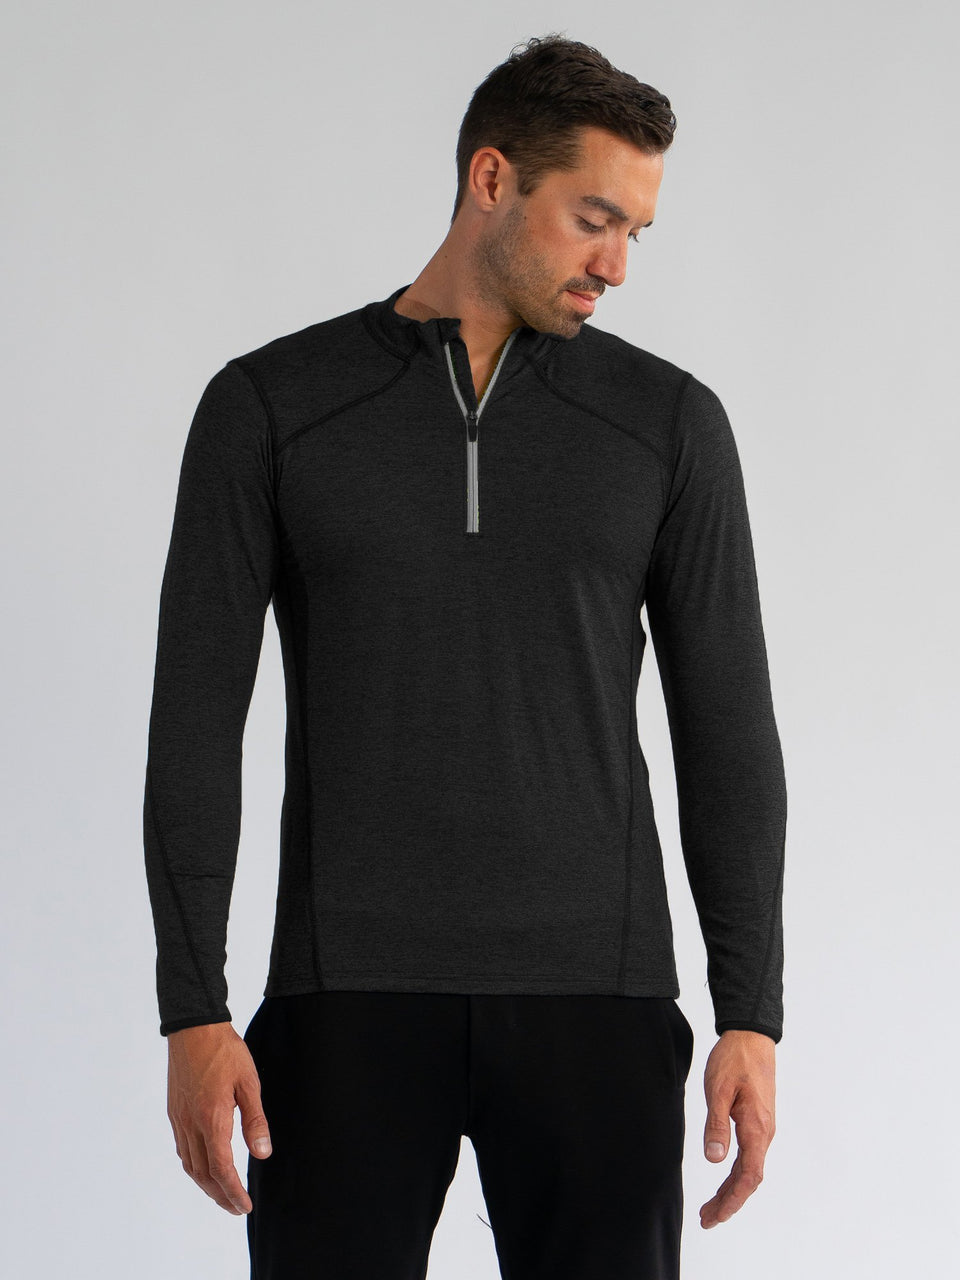 Elevate 1/4 Zip - Black - Large - SODO Apparel - Limited Inventory